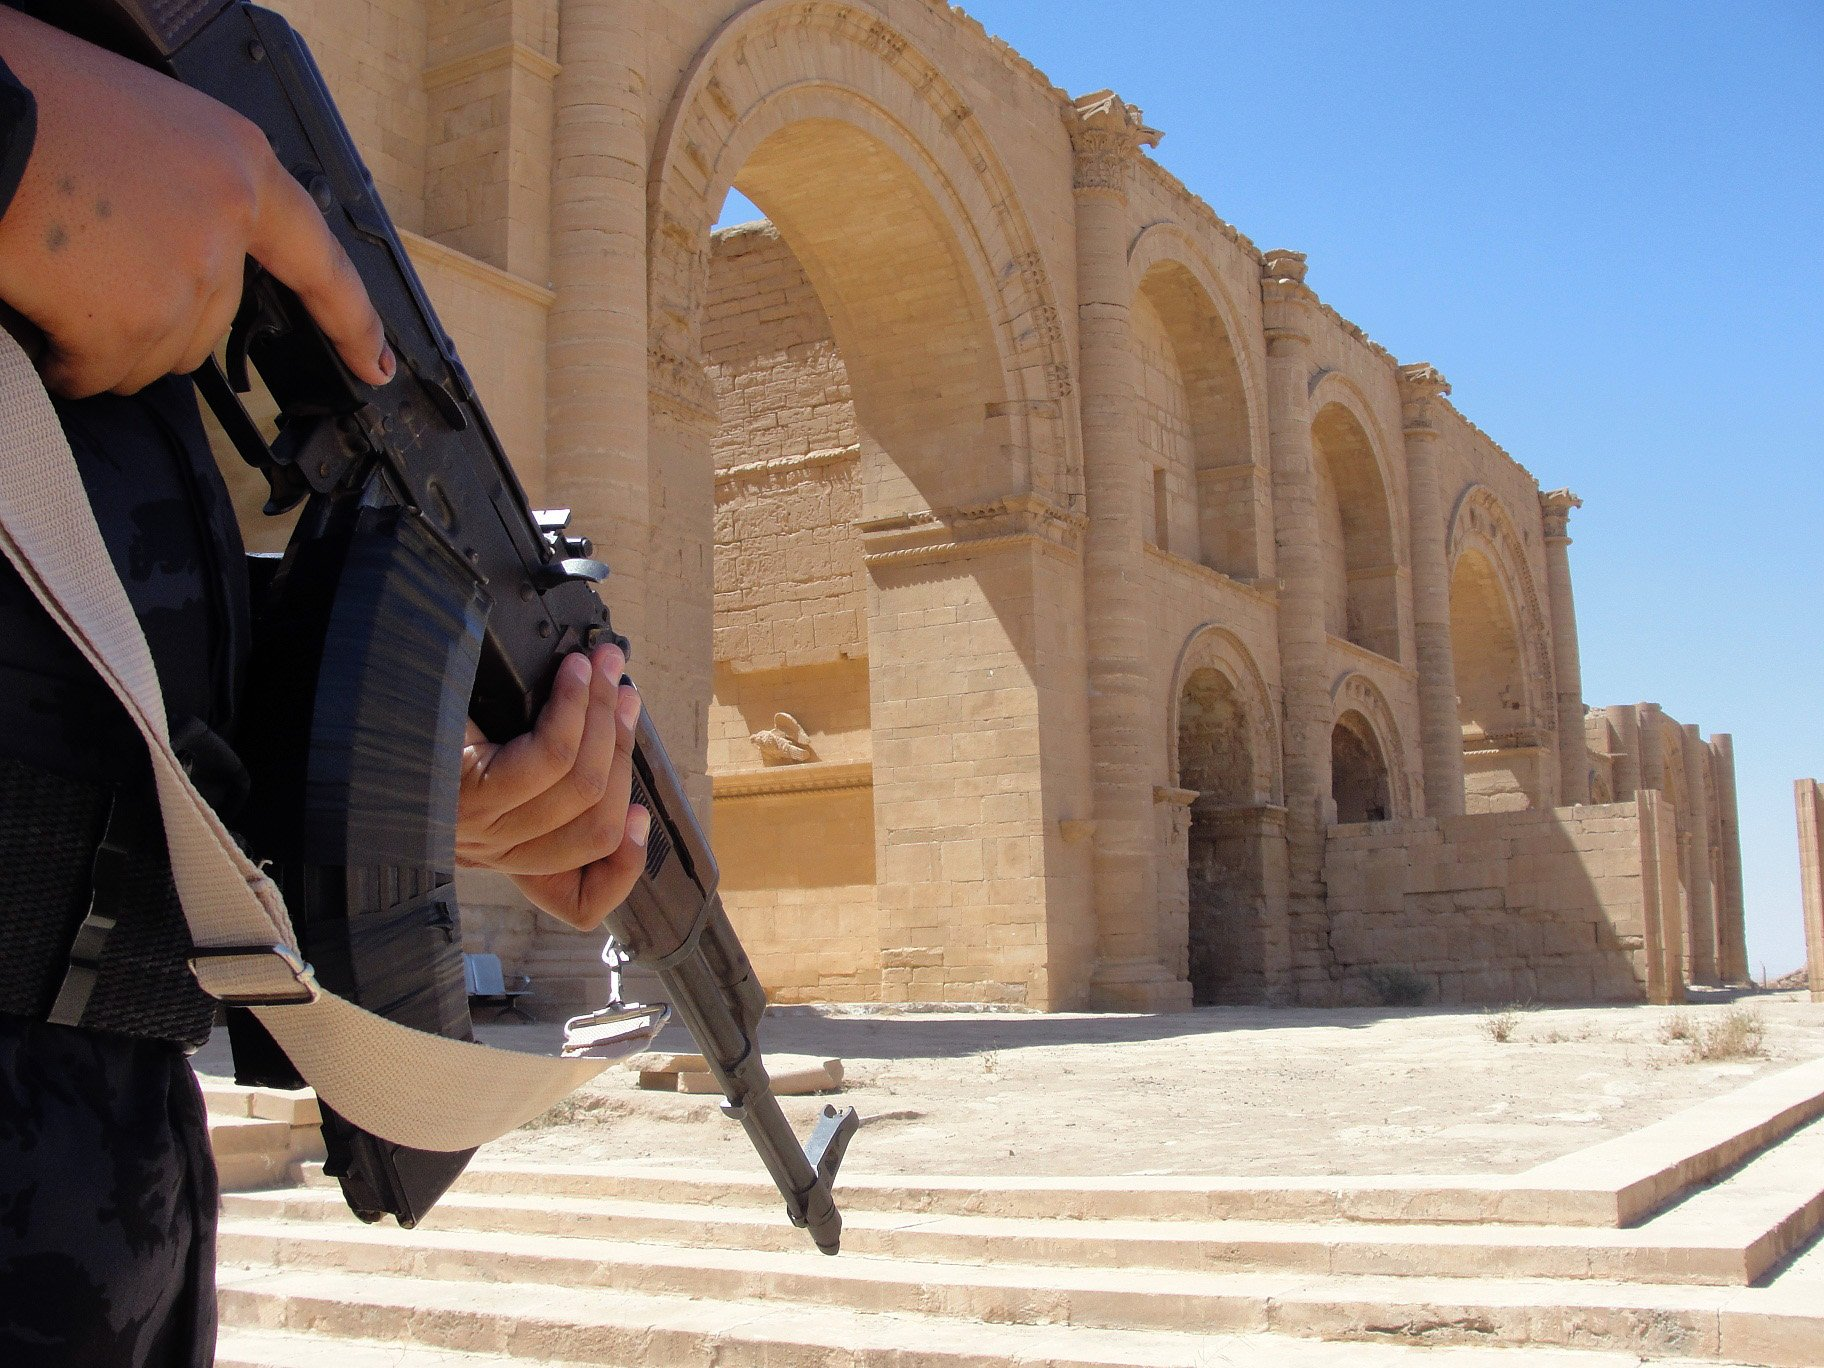 A soldier stands guard near the remains of Hatra, Iraq on June 22, 2013. Photo via Xinhua/ZUMAPRESS